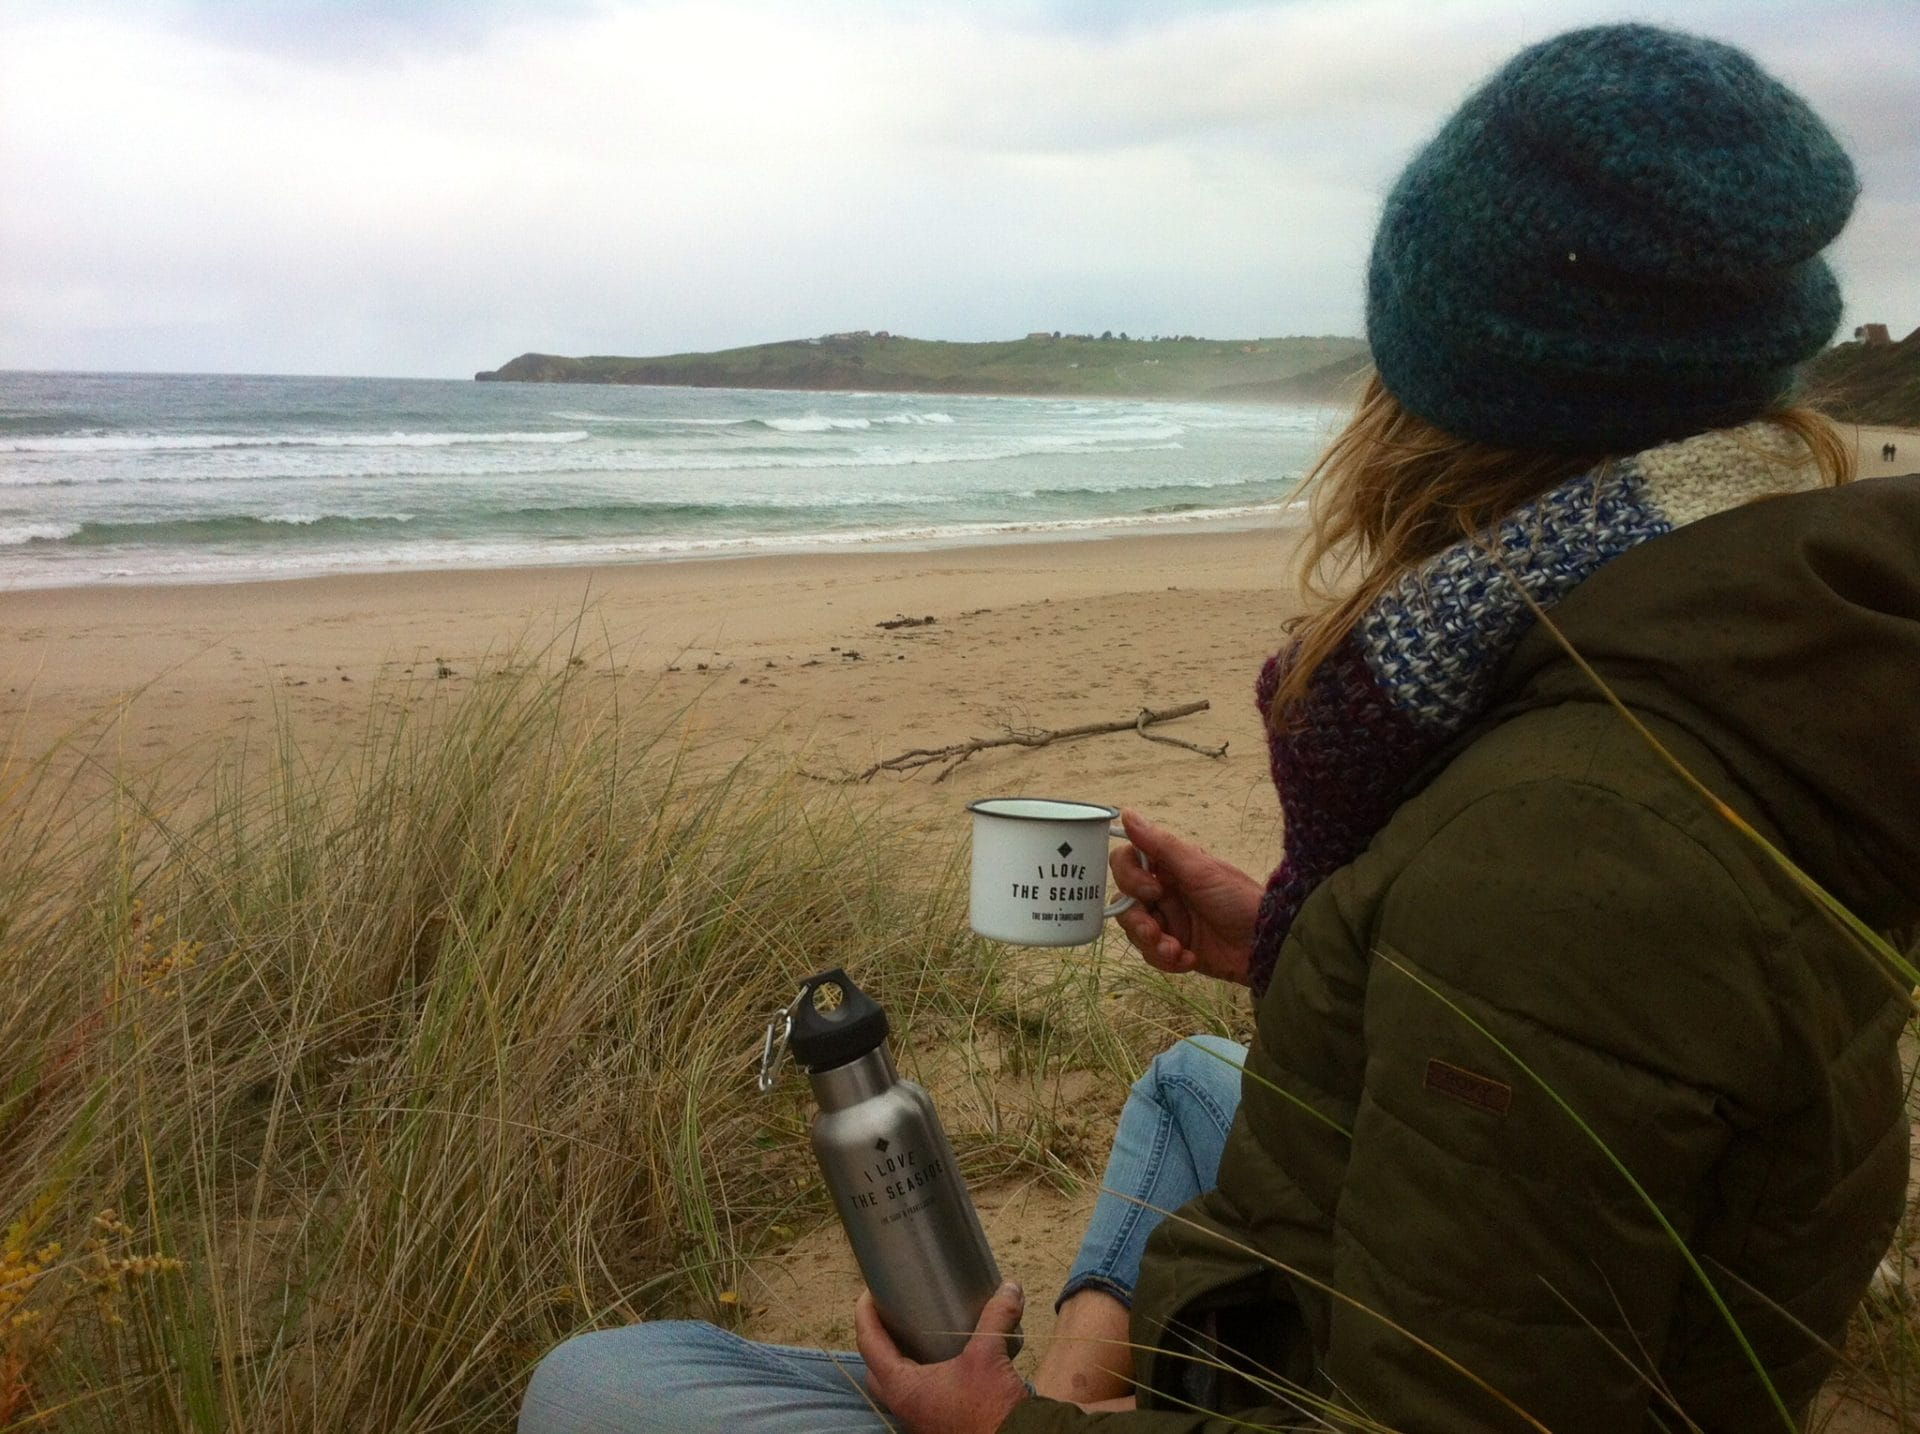 thermos-flask-ilts-beach